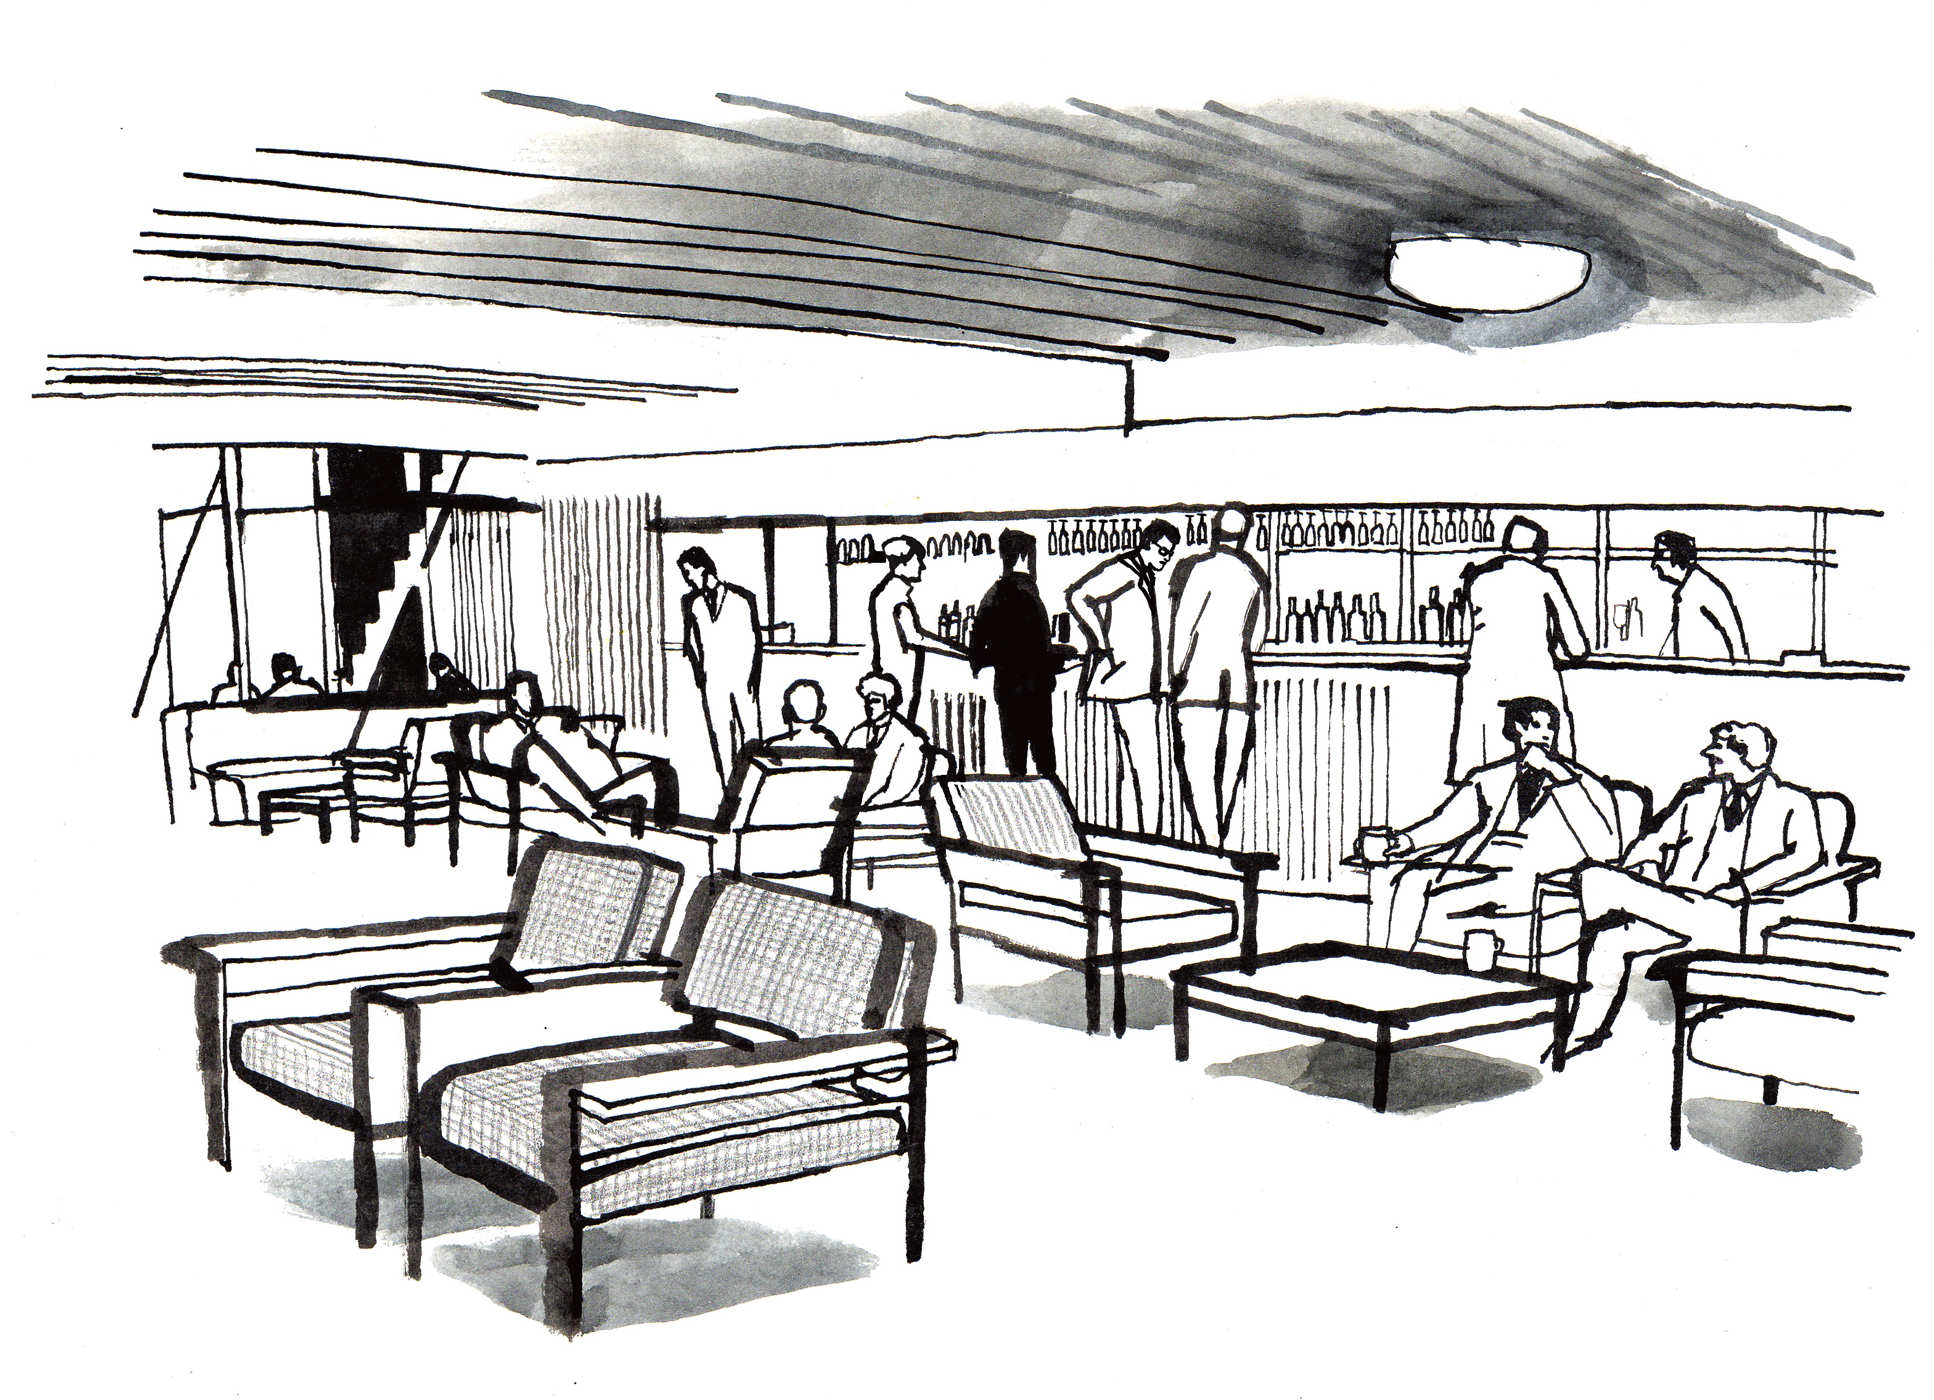 An illustration of the Southside Bar at the South Kensington Campus in the 1960s